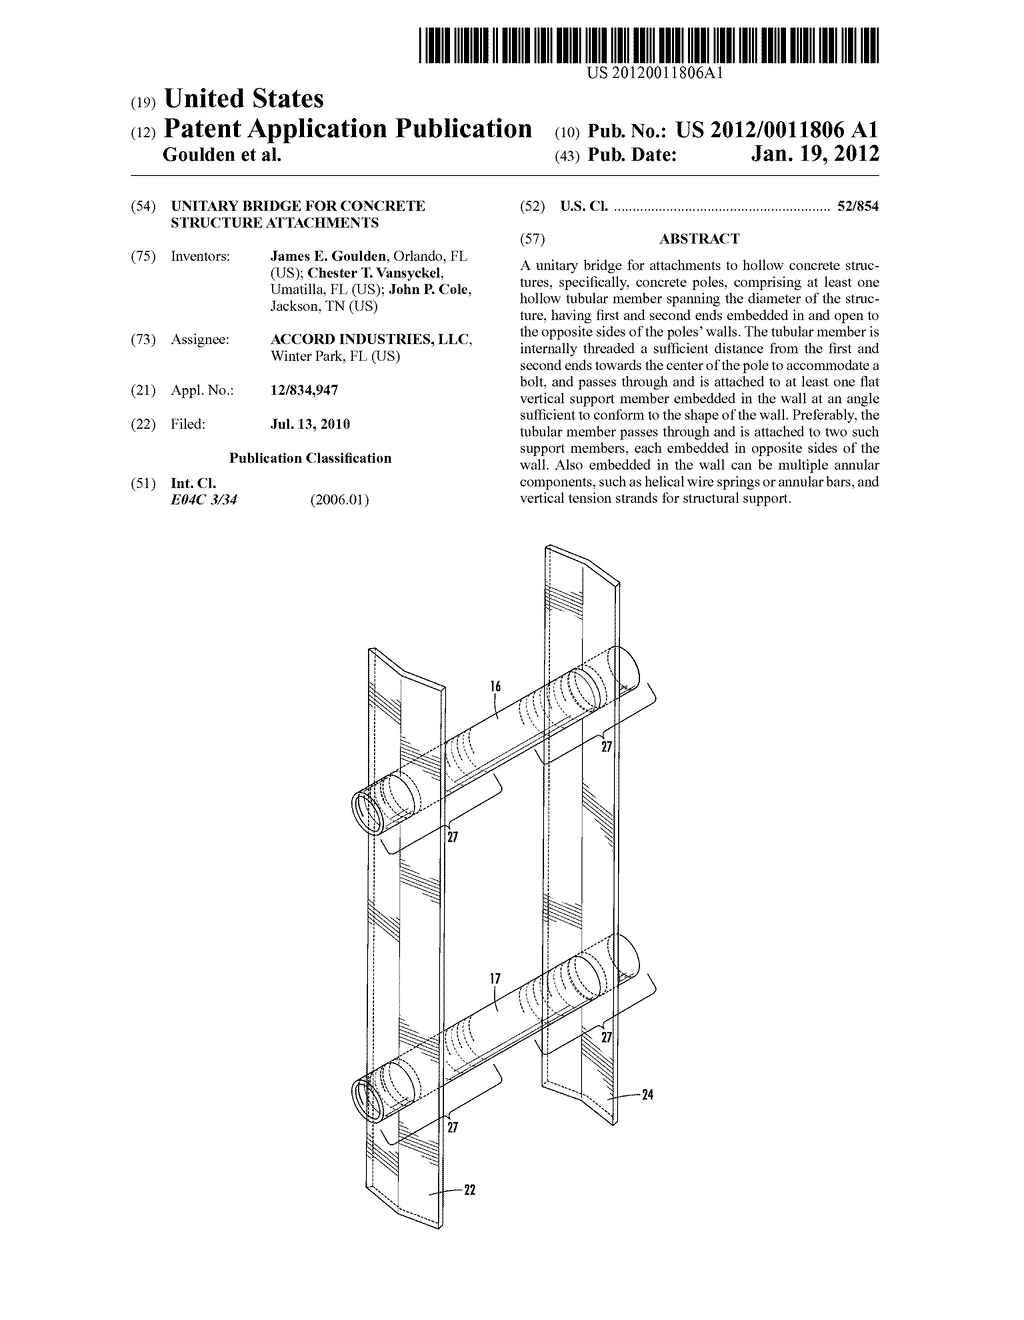 UNITARY BRIDGE FOR CONCRETE STRUCTURE ATTACHMENTS - diagram, schematic, and image 01